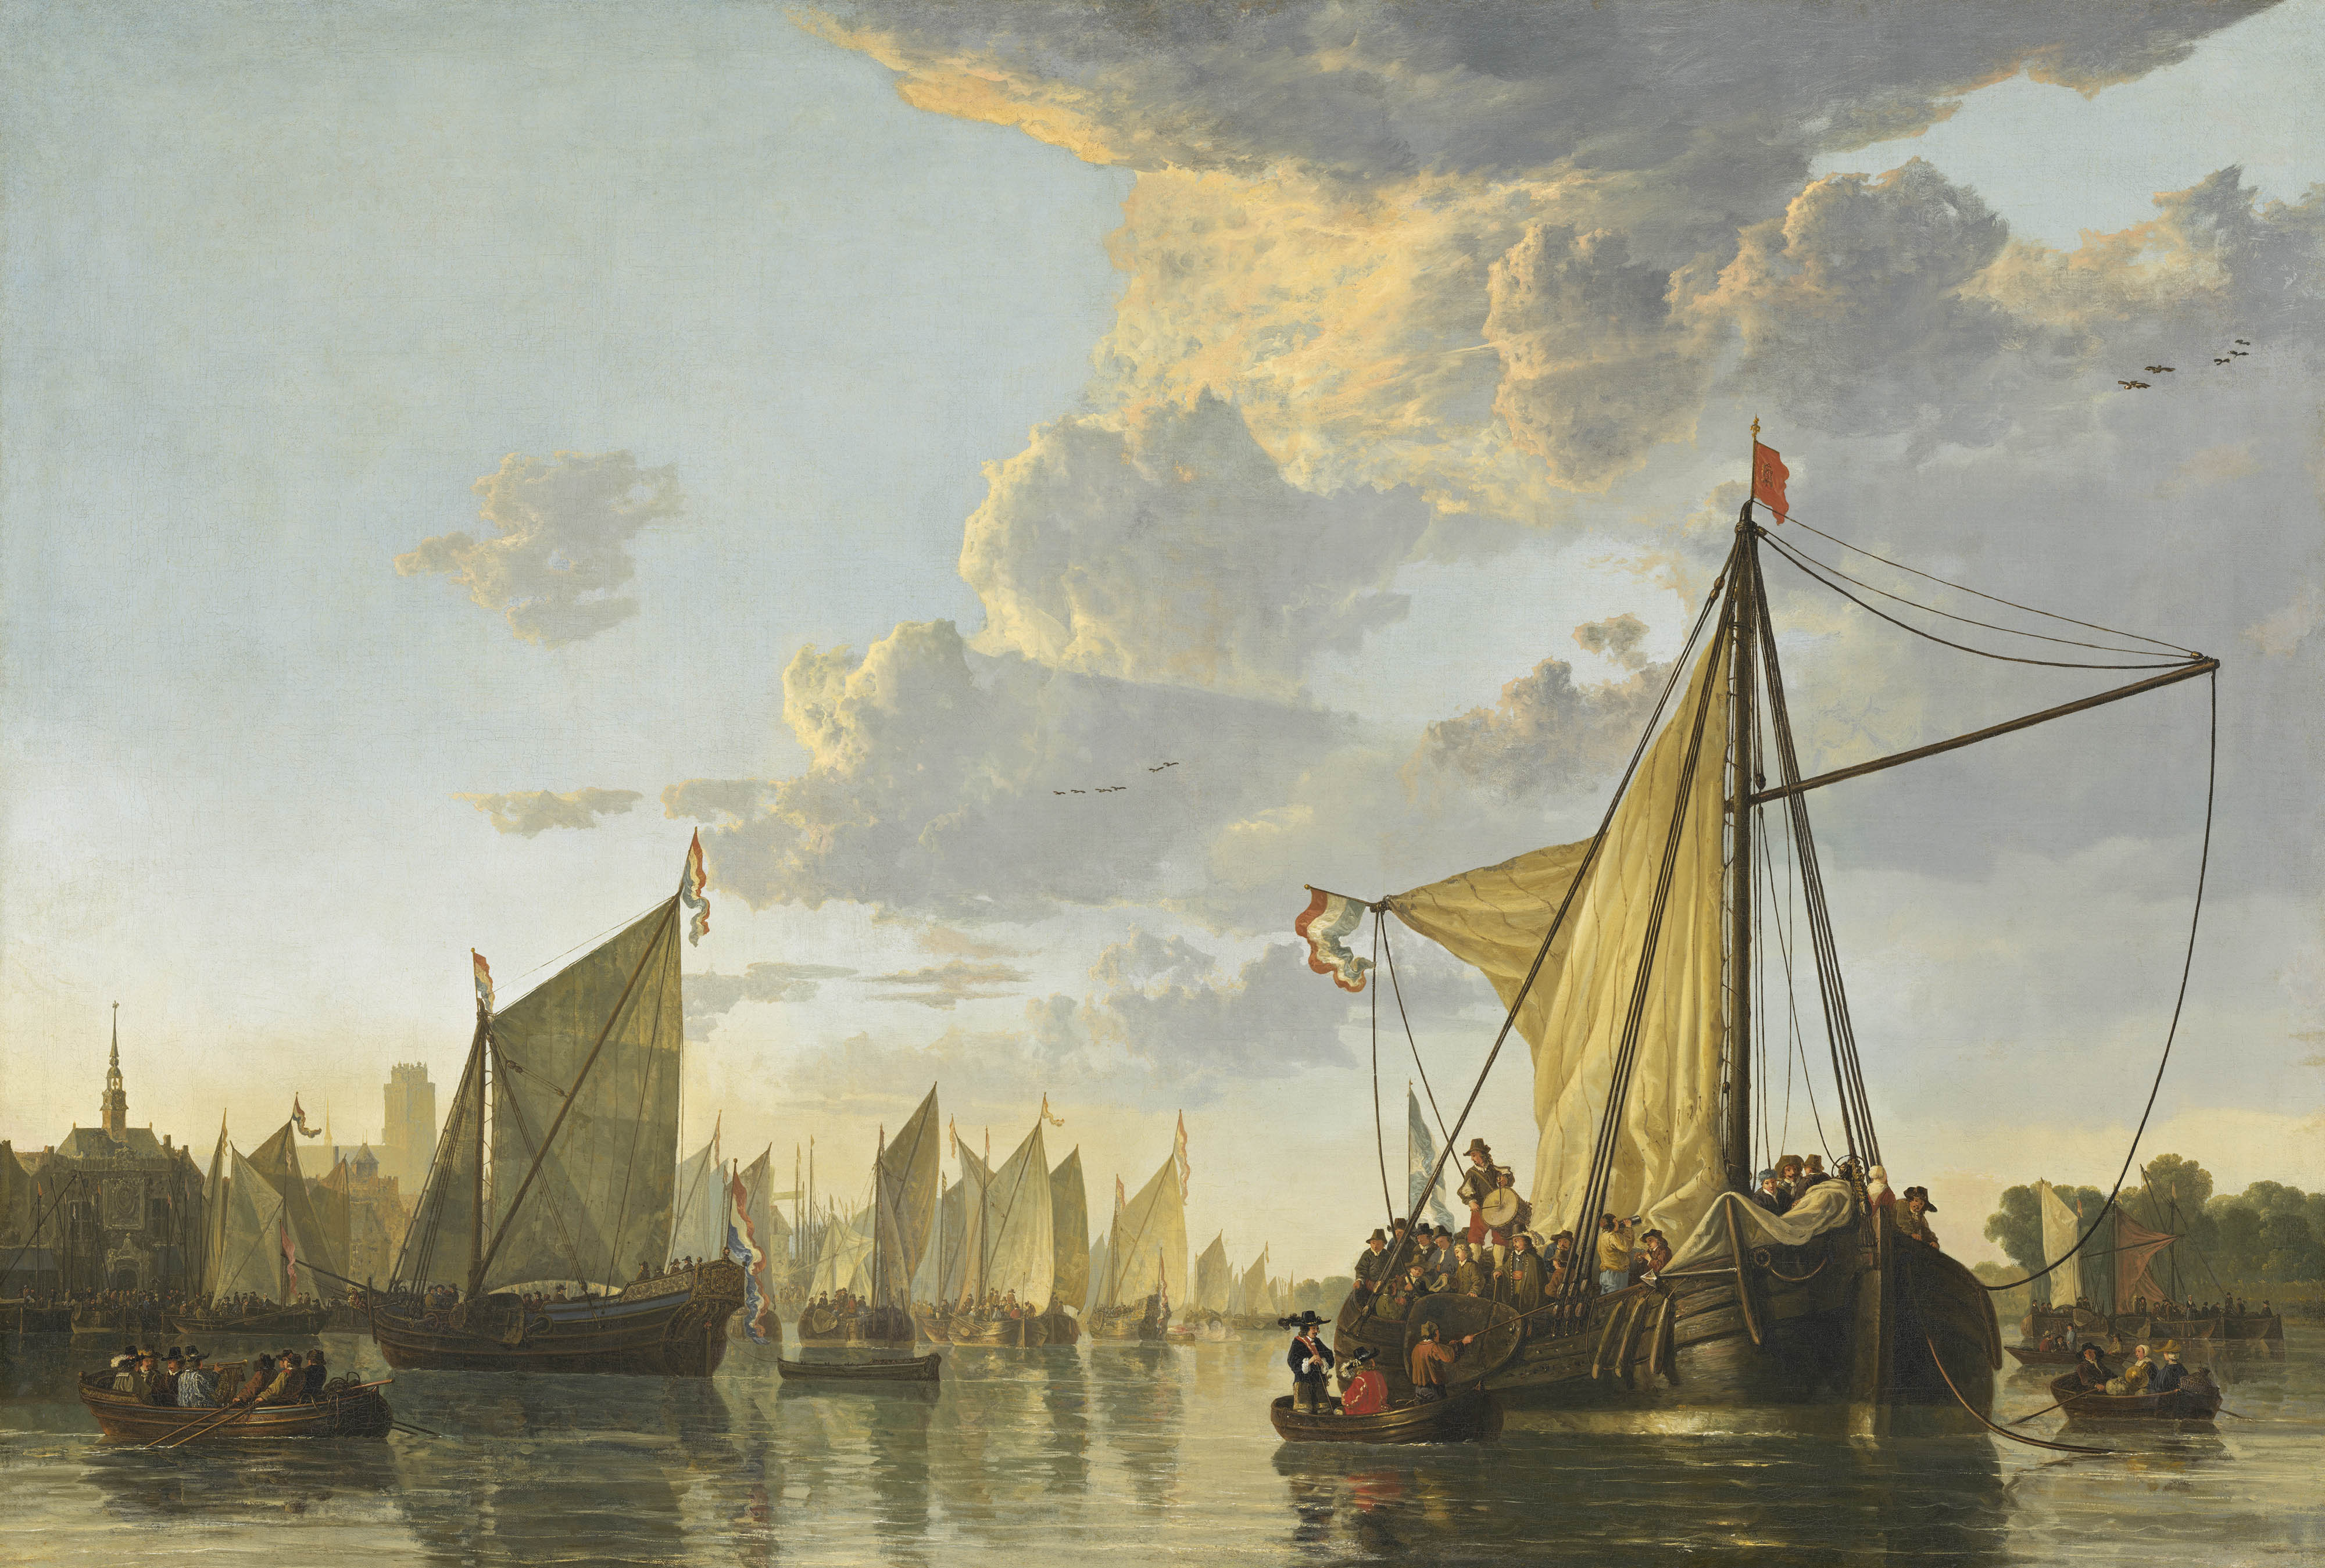 Major Aelbert Cuyp Exhibition in the Netherlands – September 2020